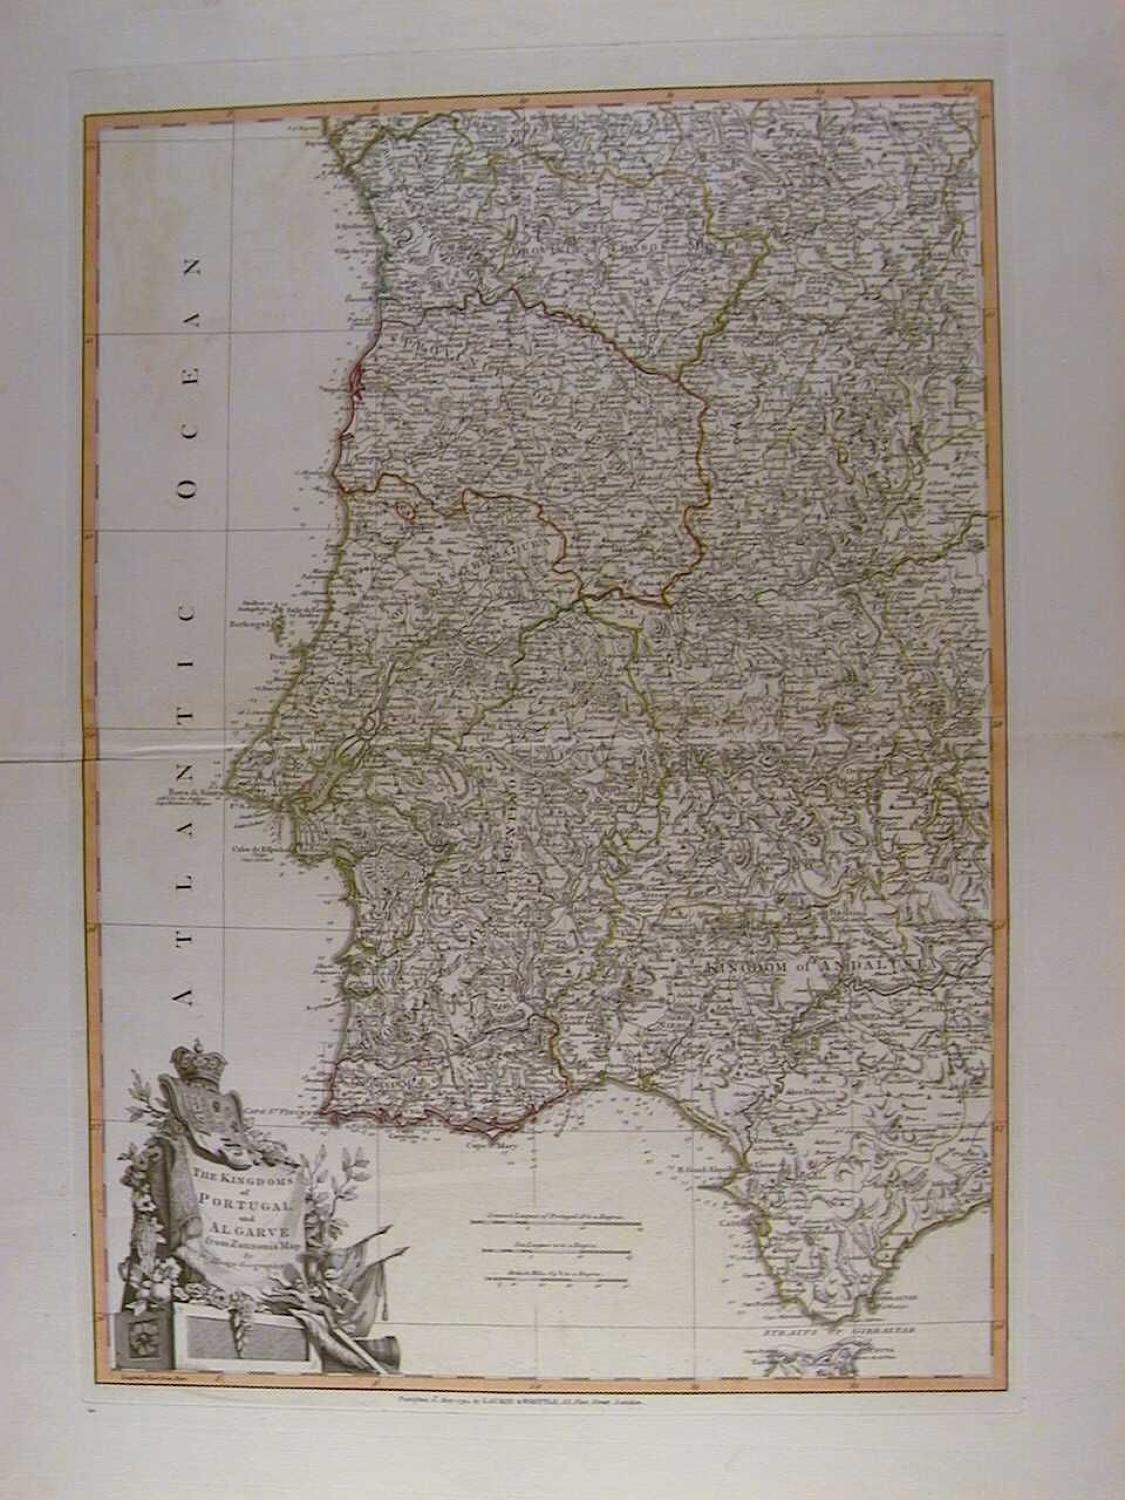 The Kingdoms of Portugal and Algarve by J Lodge